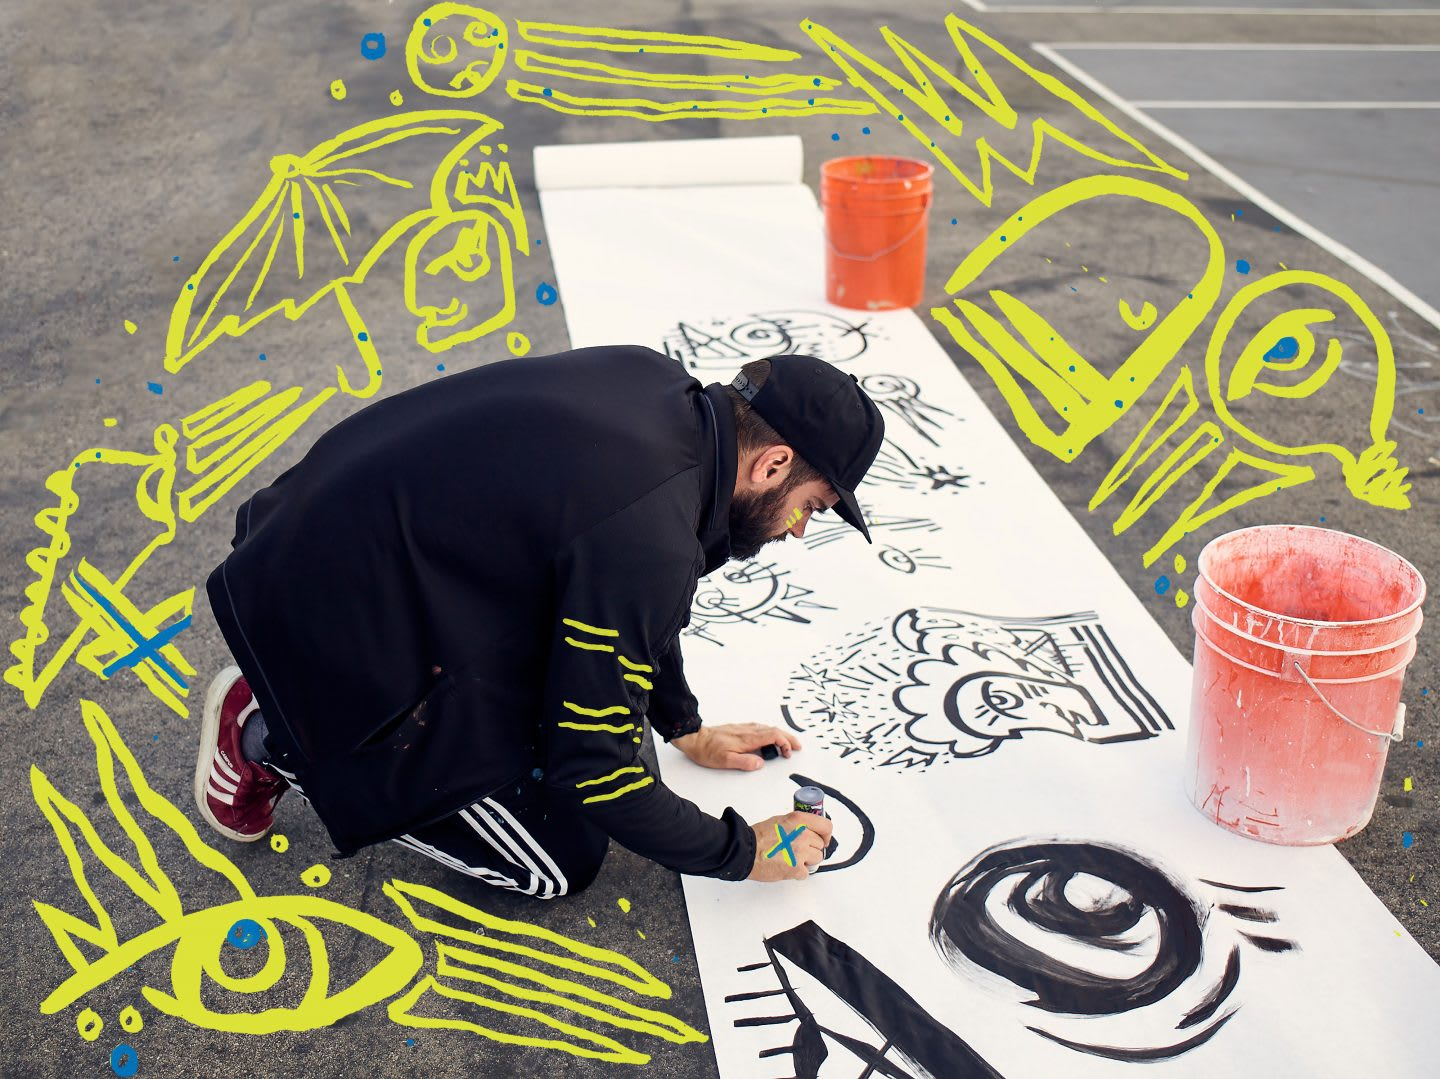 An artist begins his drawings on a large piece of white paper rolled across the street. art, artist, creator, creativity, drawing, doodle